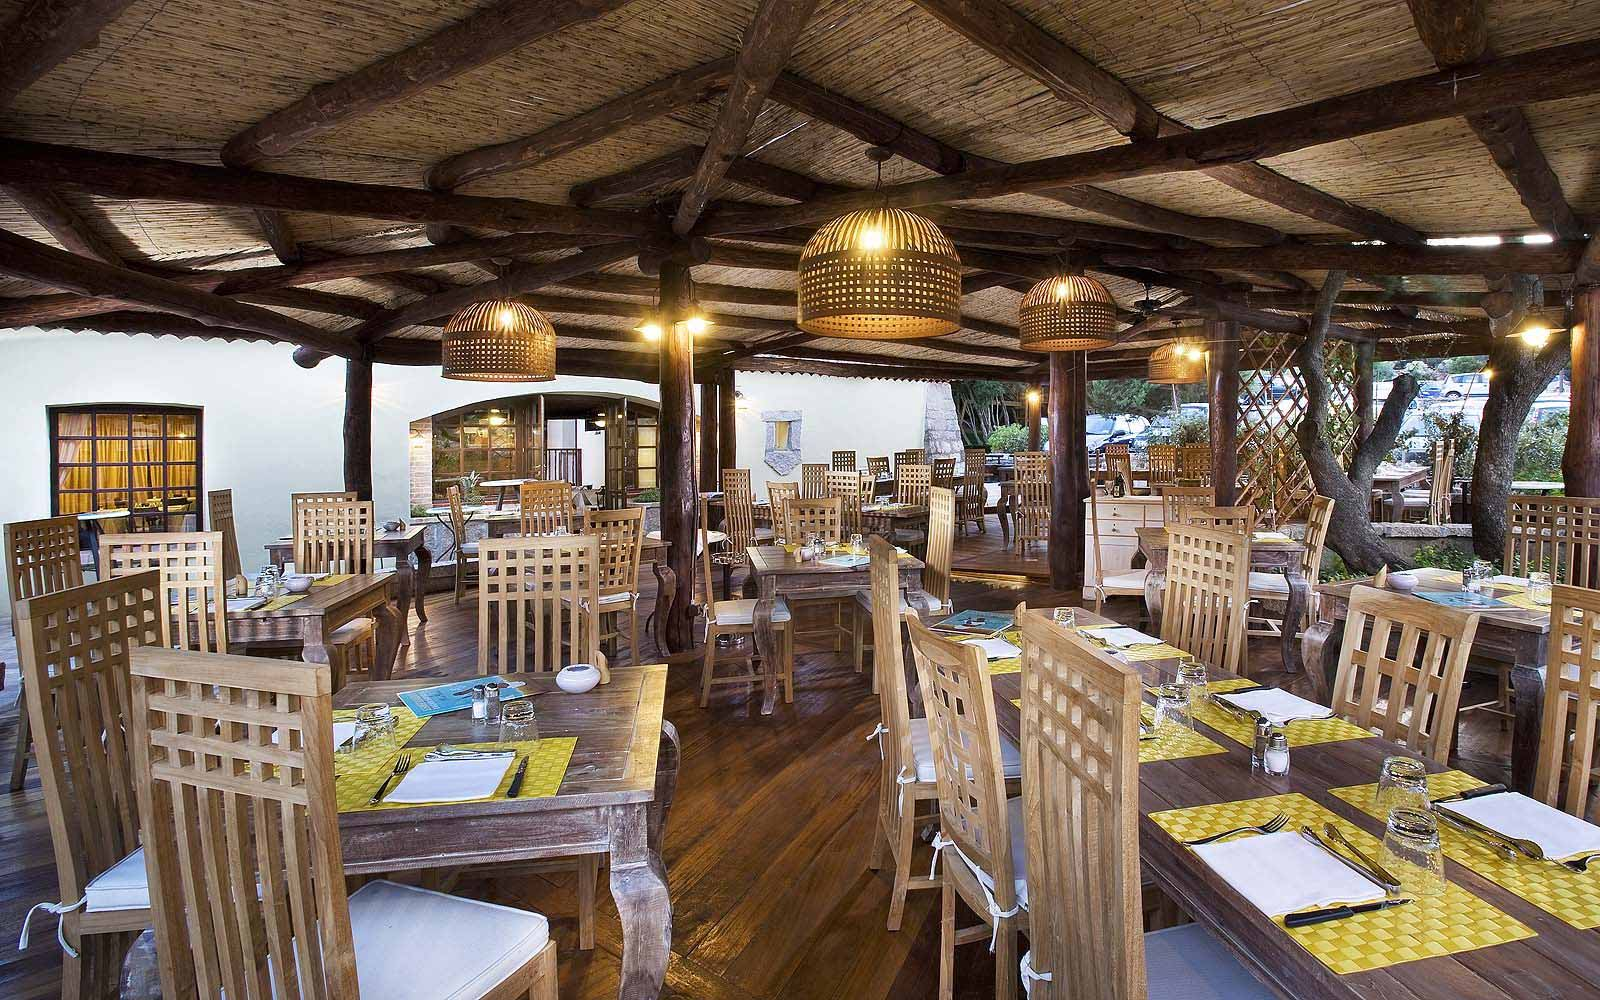 Churrascaria Restaurant in Costa Smeralda